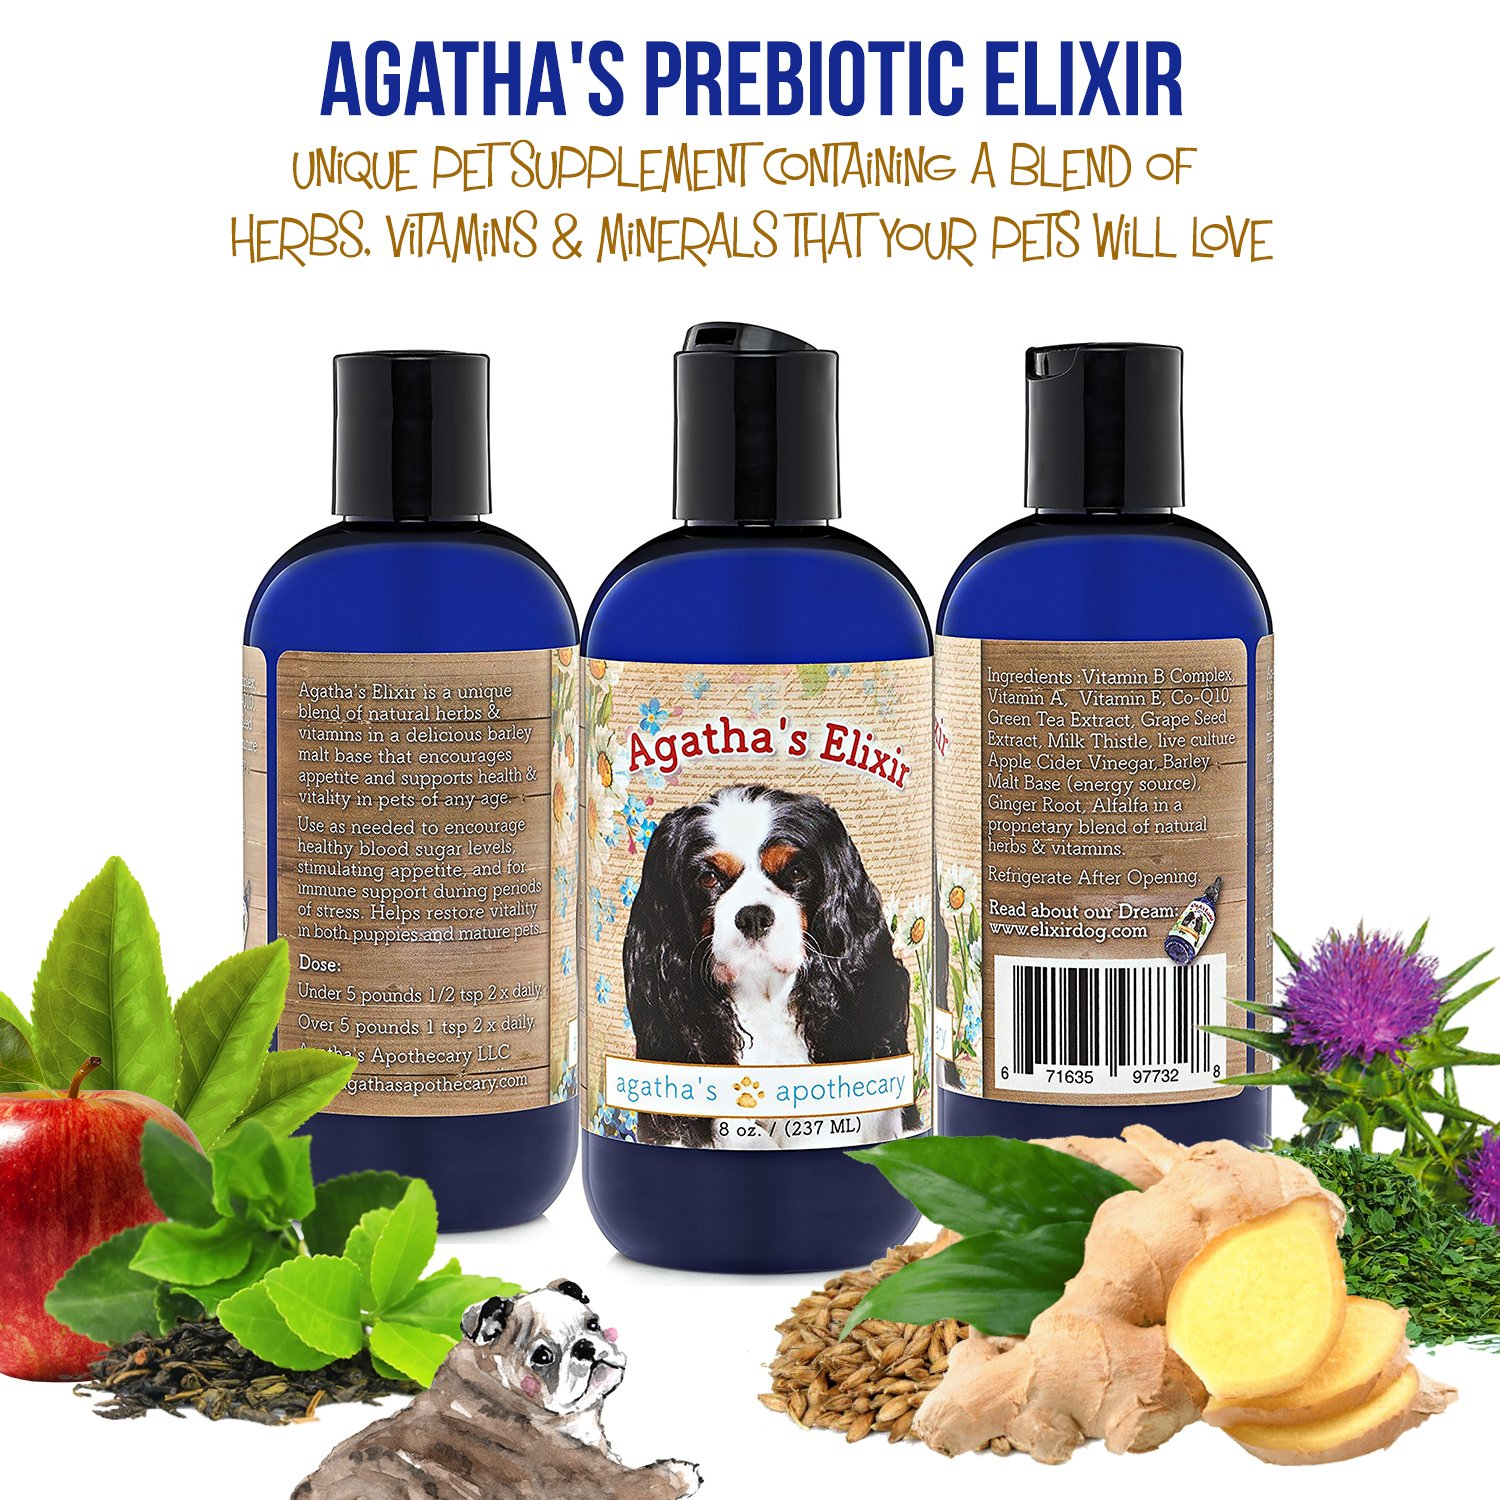 Agatha's Elixir Prebiotics for Dogs ● Appetite Stimulant for Picky Eaters and Senior Pets ● Green Tea & Milk Thistle Boost Immune System, Liver Detoxifier by Agatha's Pet Wellness (Image #9)